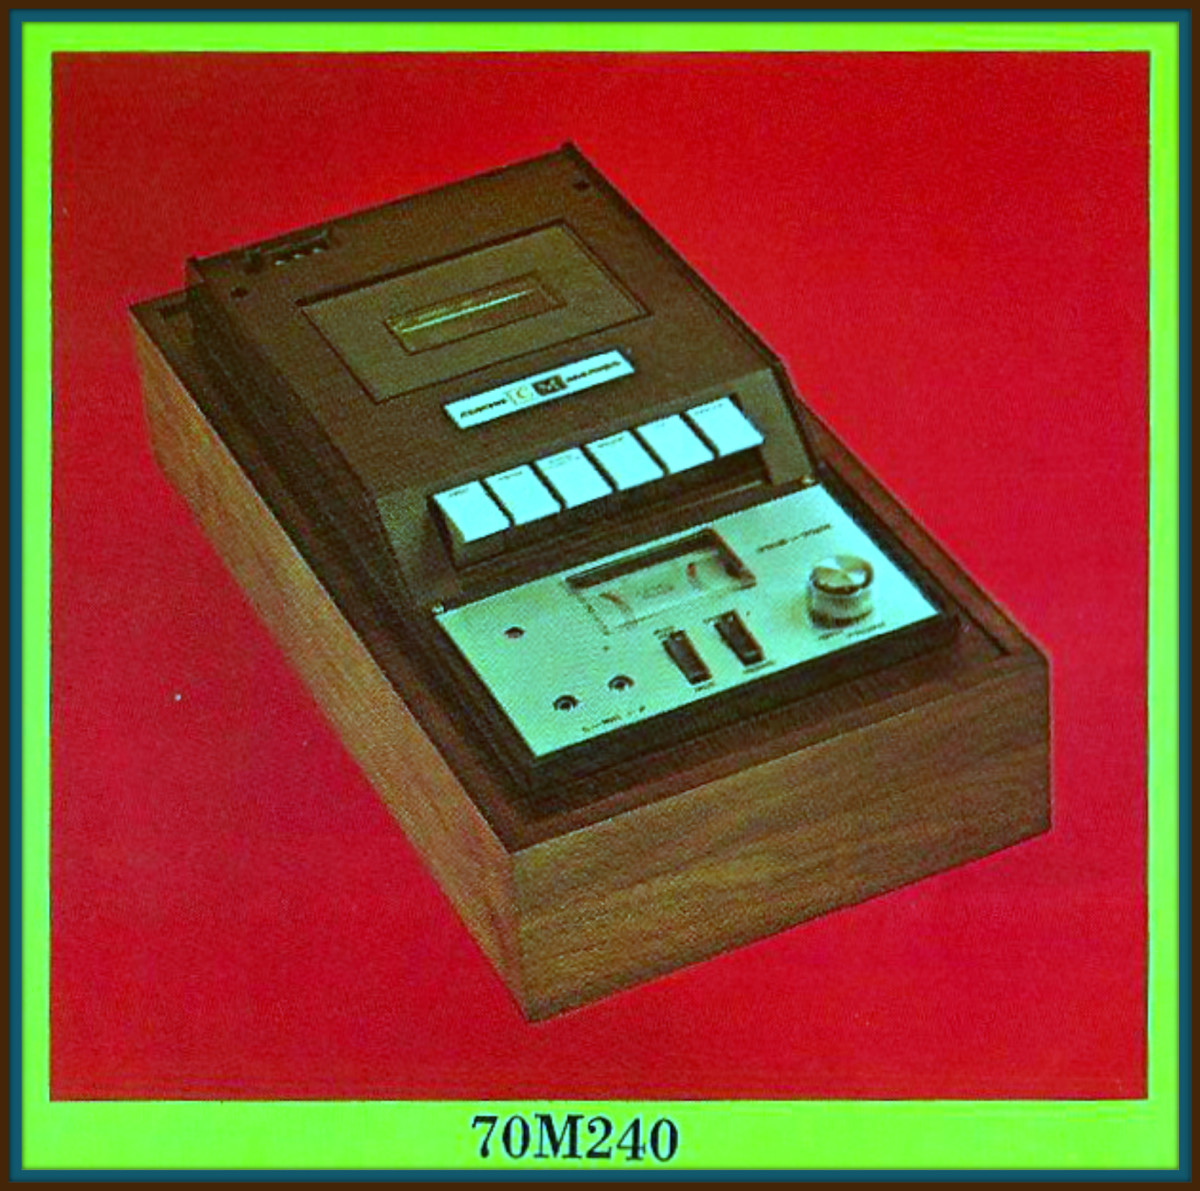 In 1967 for the first time Curtis Mathes offered a heavy duty stereophonic cassette in its line. With recording as well as playback capabilities.